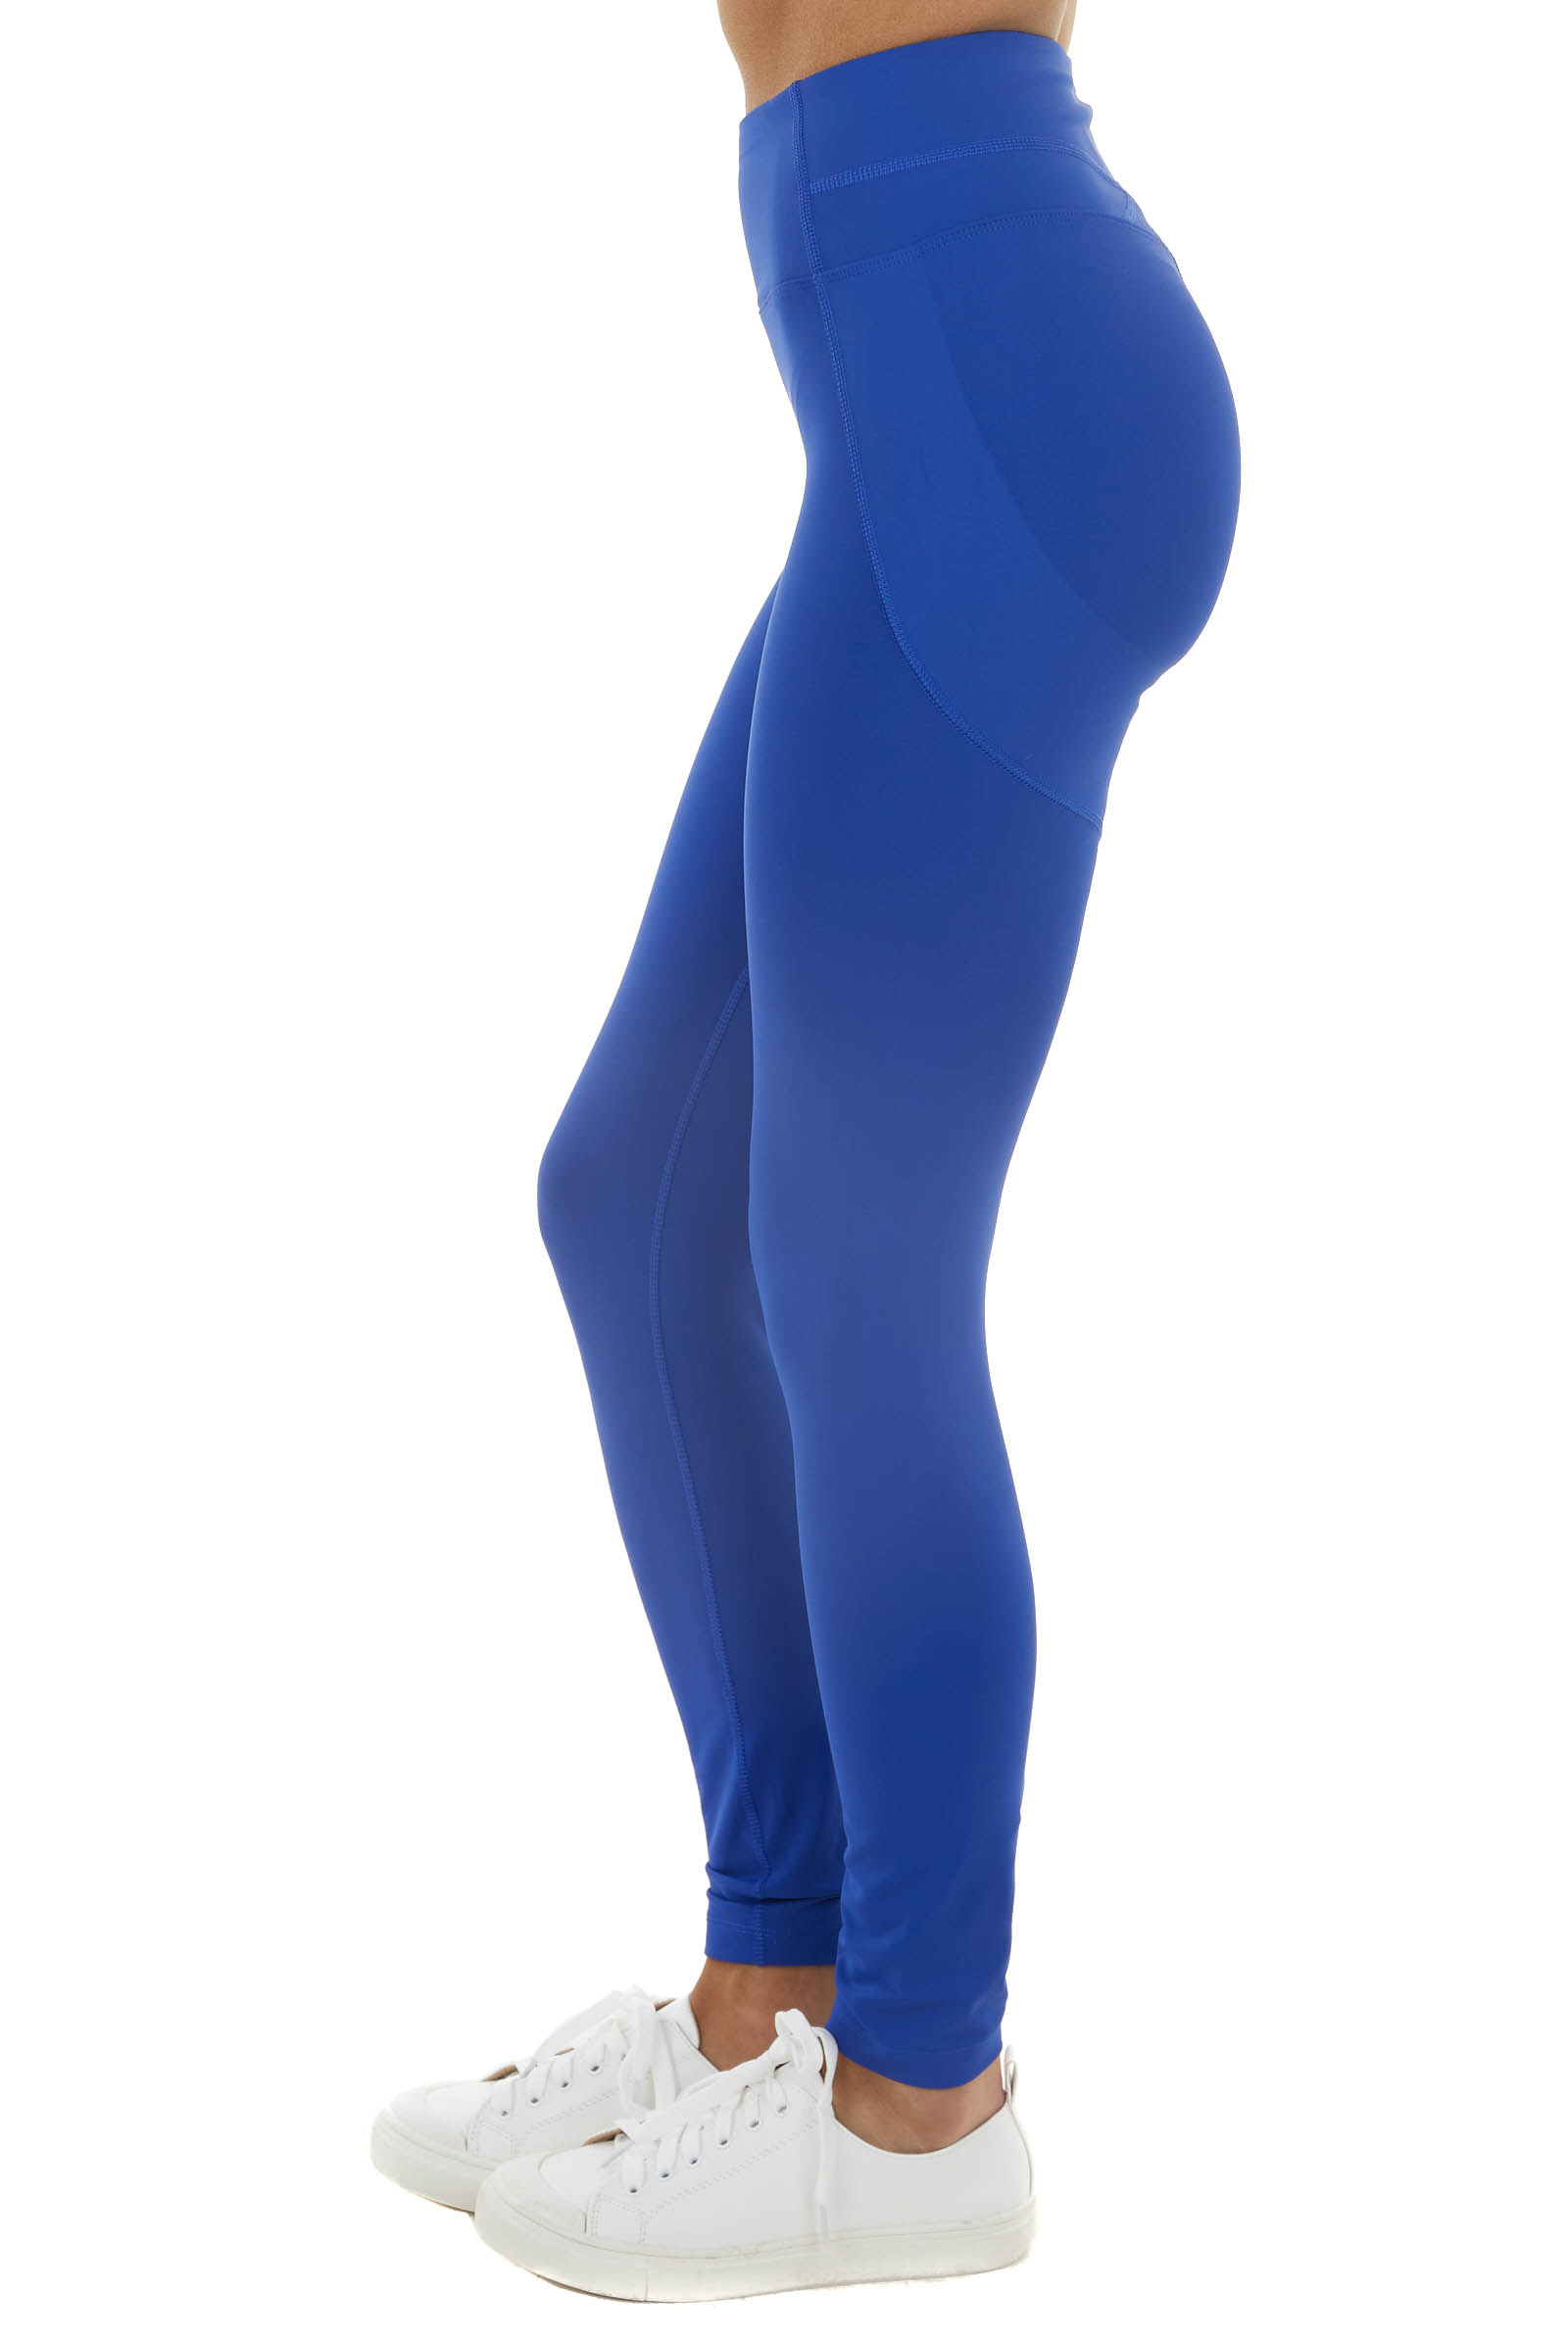 Royal Blue High Waisted Stretchy Leggings with Elastic Waist